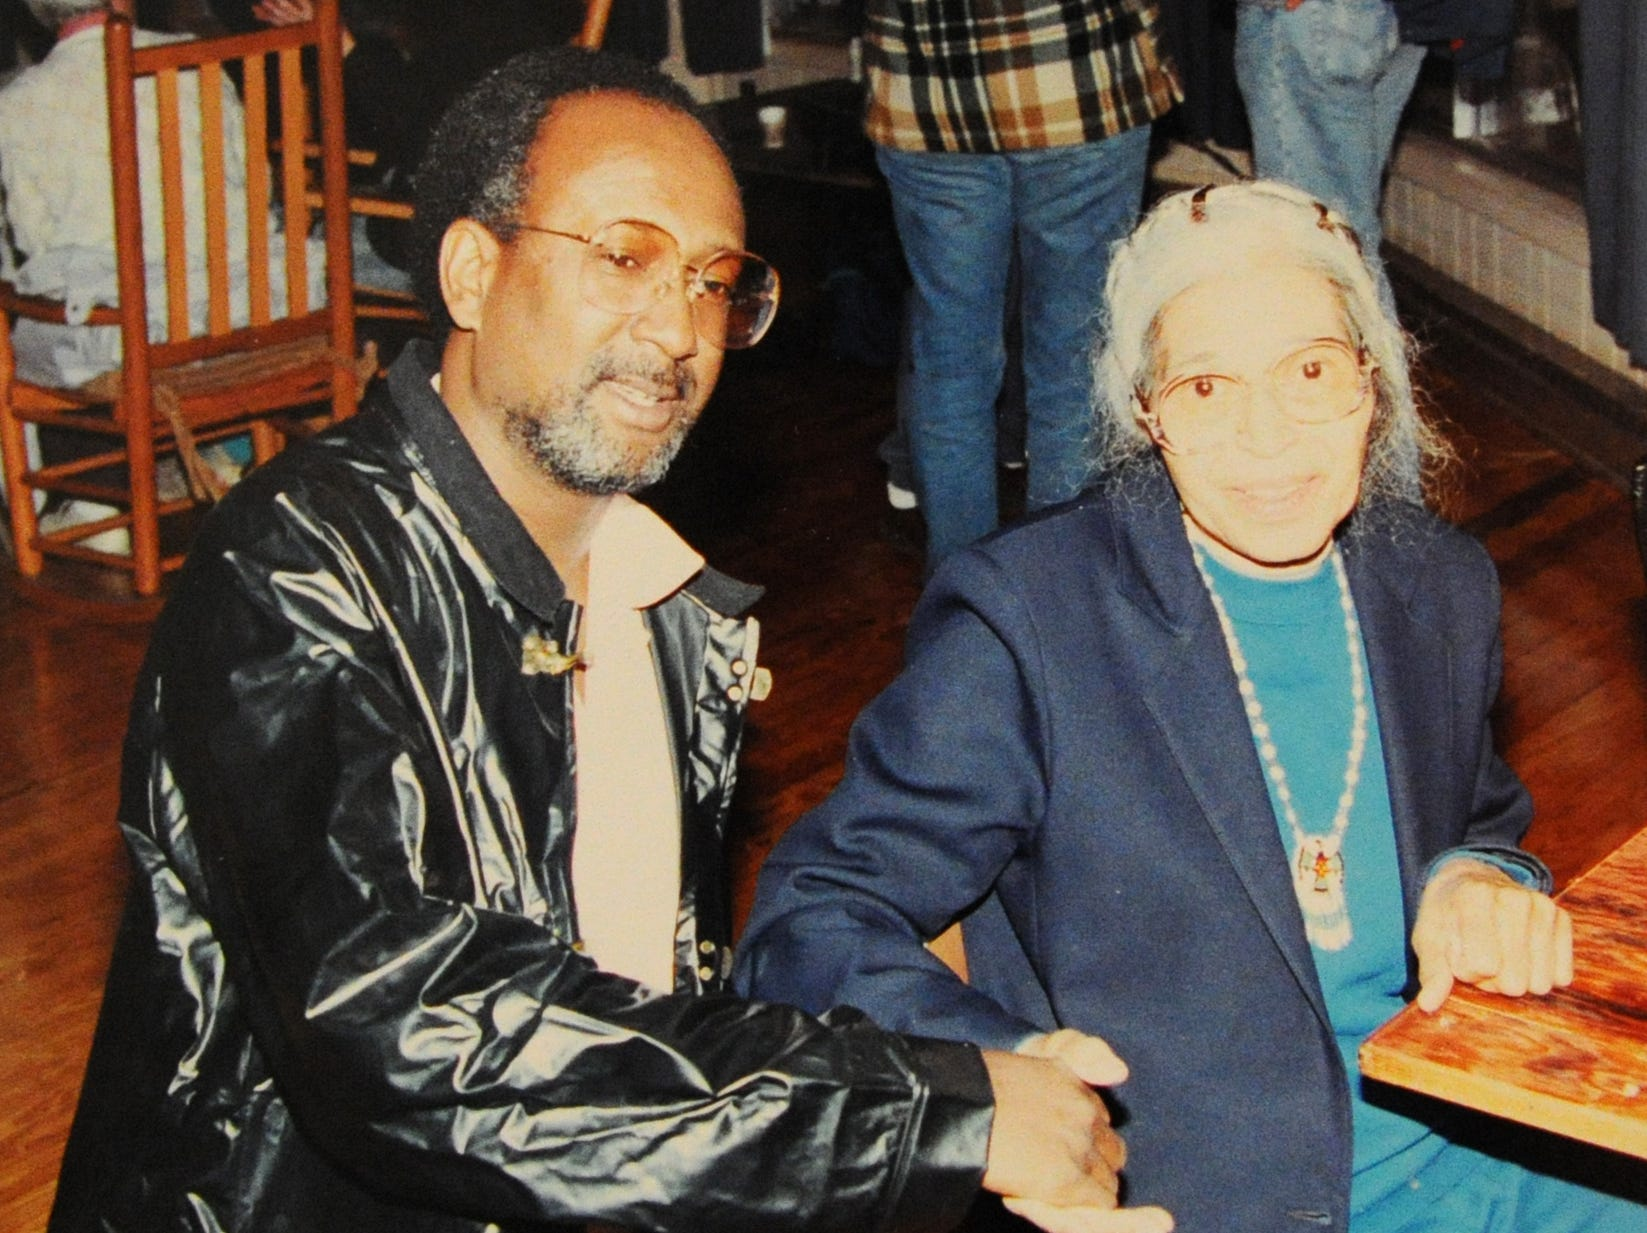 Knoxville Interim Mayor Daniel Brown visits with Rosa Parks at the Highlander Center for Research and Education on May 5, 1990.  Photo by Daniel Brown / Special to the News Sentinel